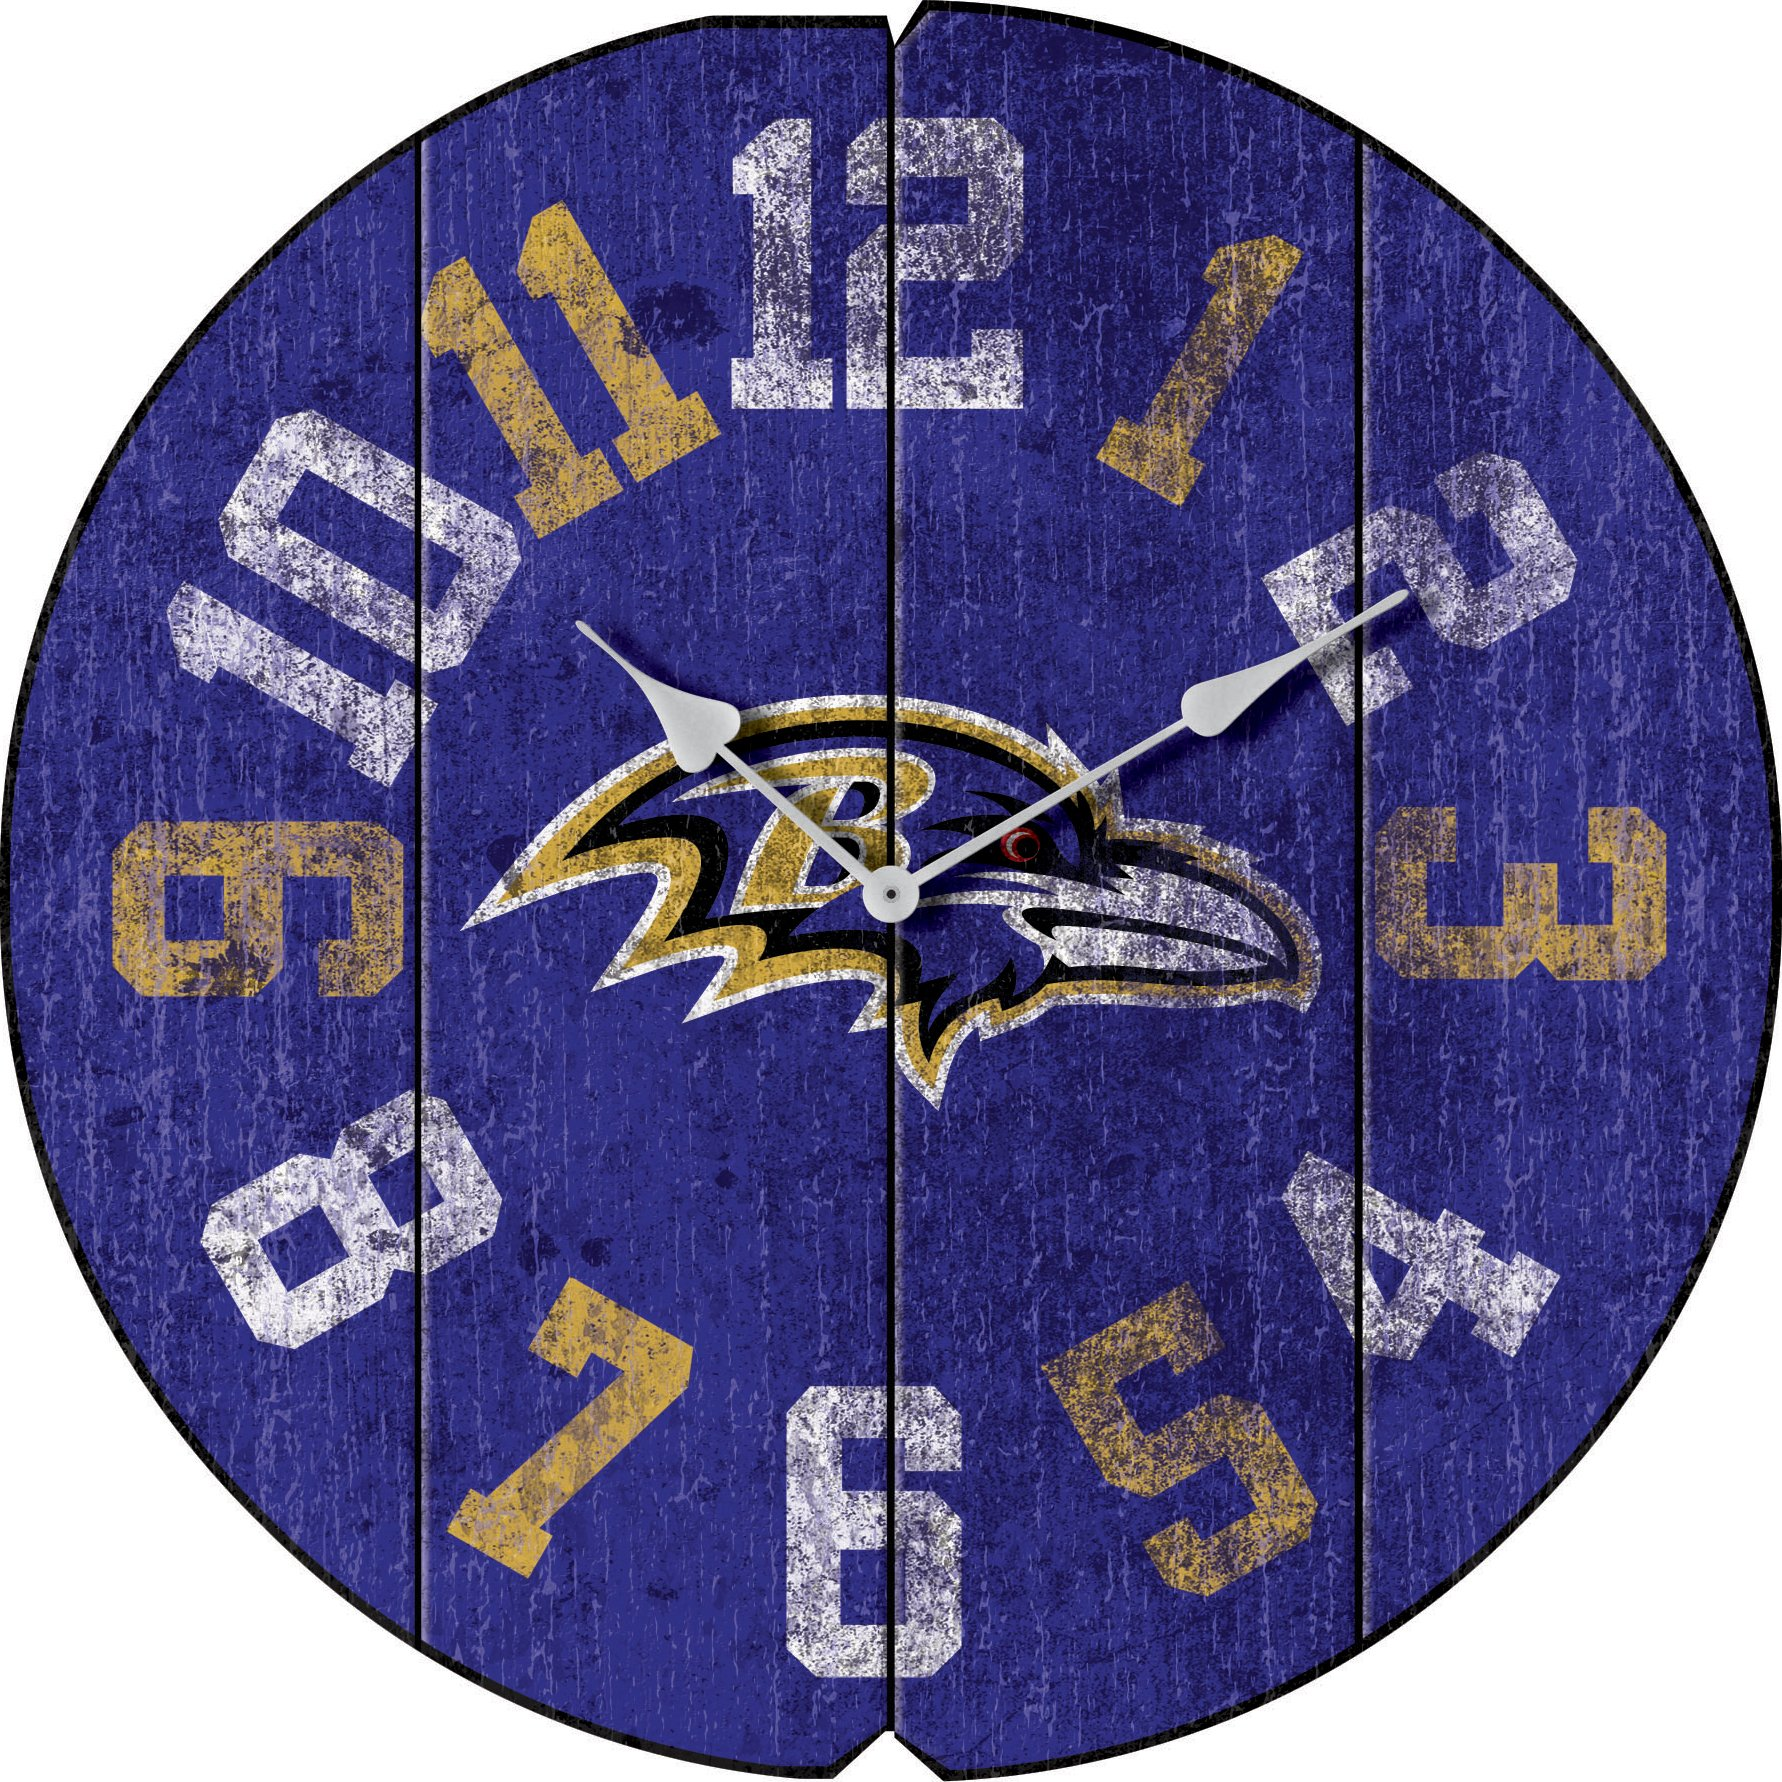 Imperial Officially Licensed NFL Merchandise: Vintage Round Clock, Baltimore Ravens by Imperial